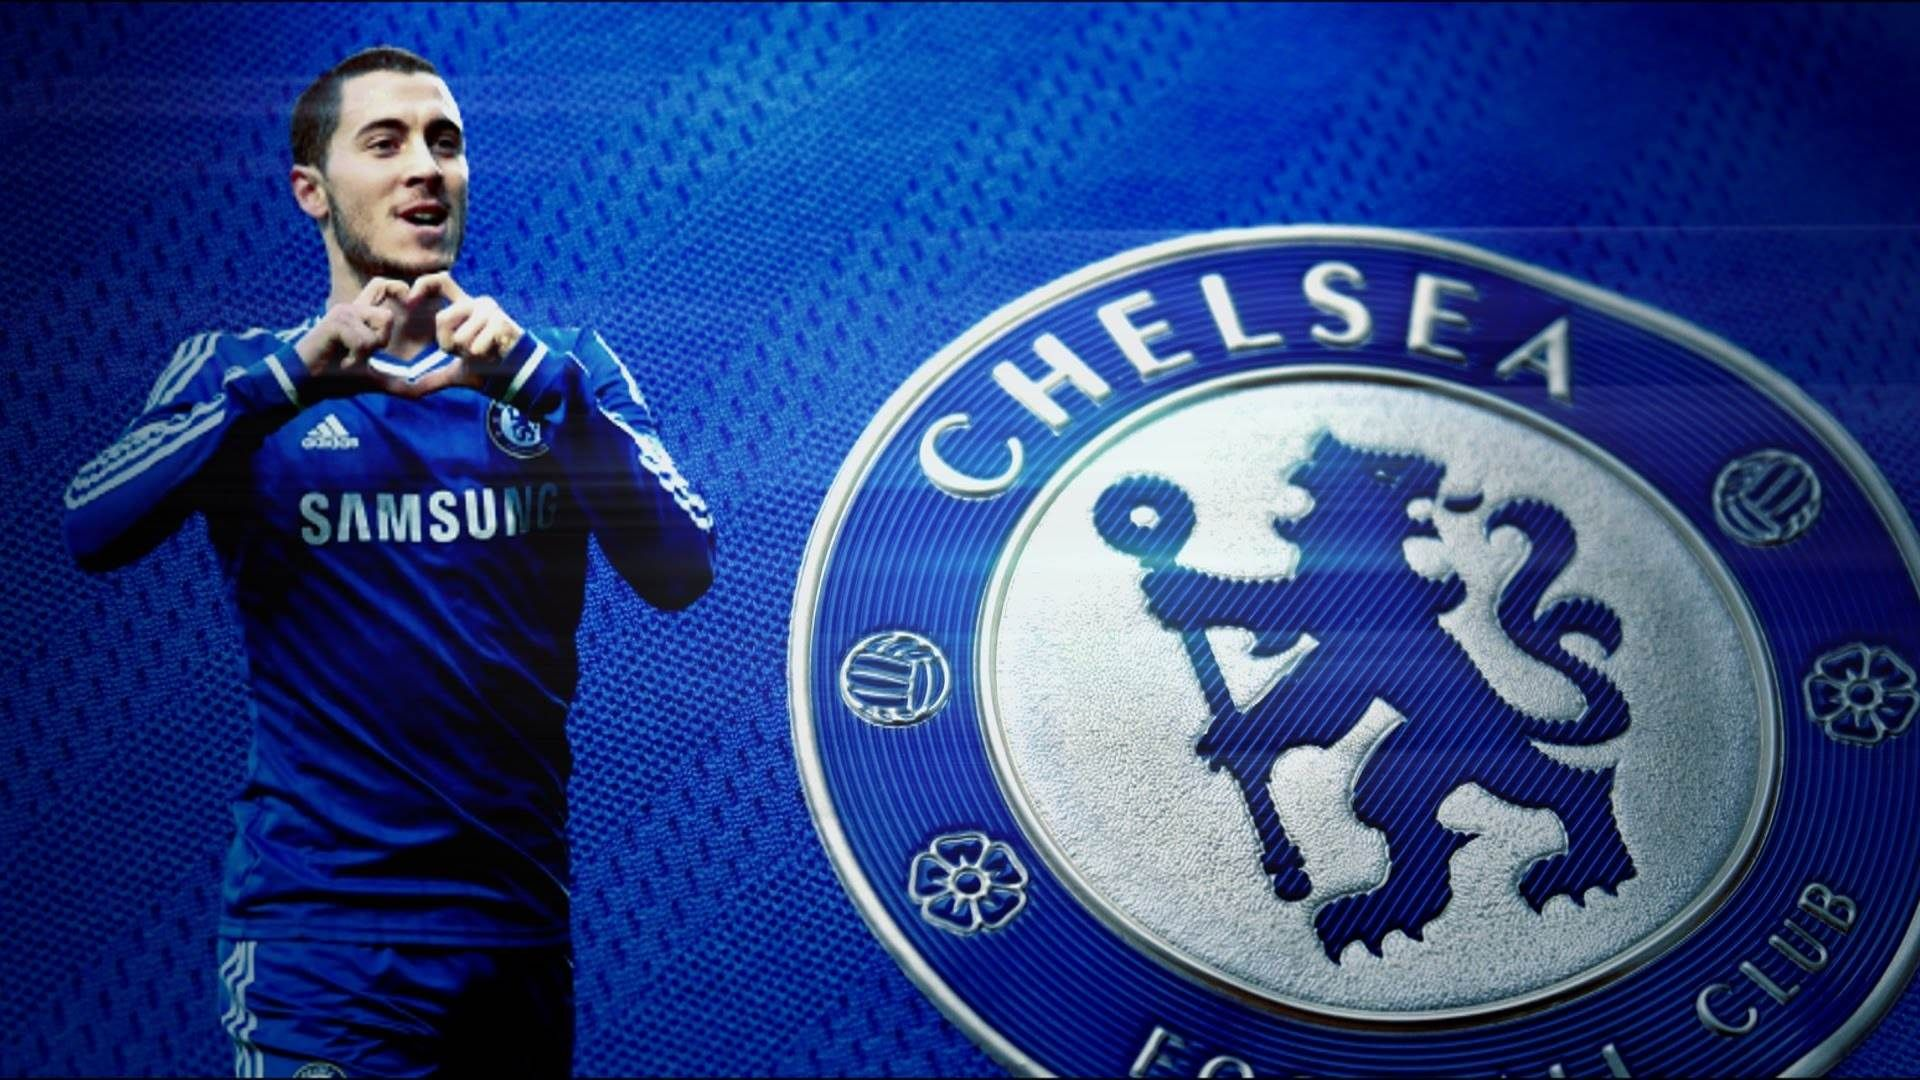 Eden Hazard Wallpaper Chelsea U Wallpaper Free Download